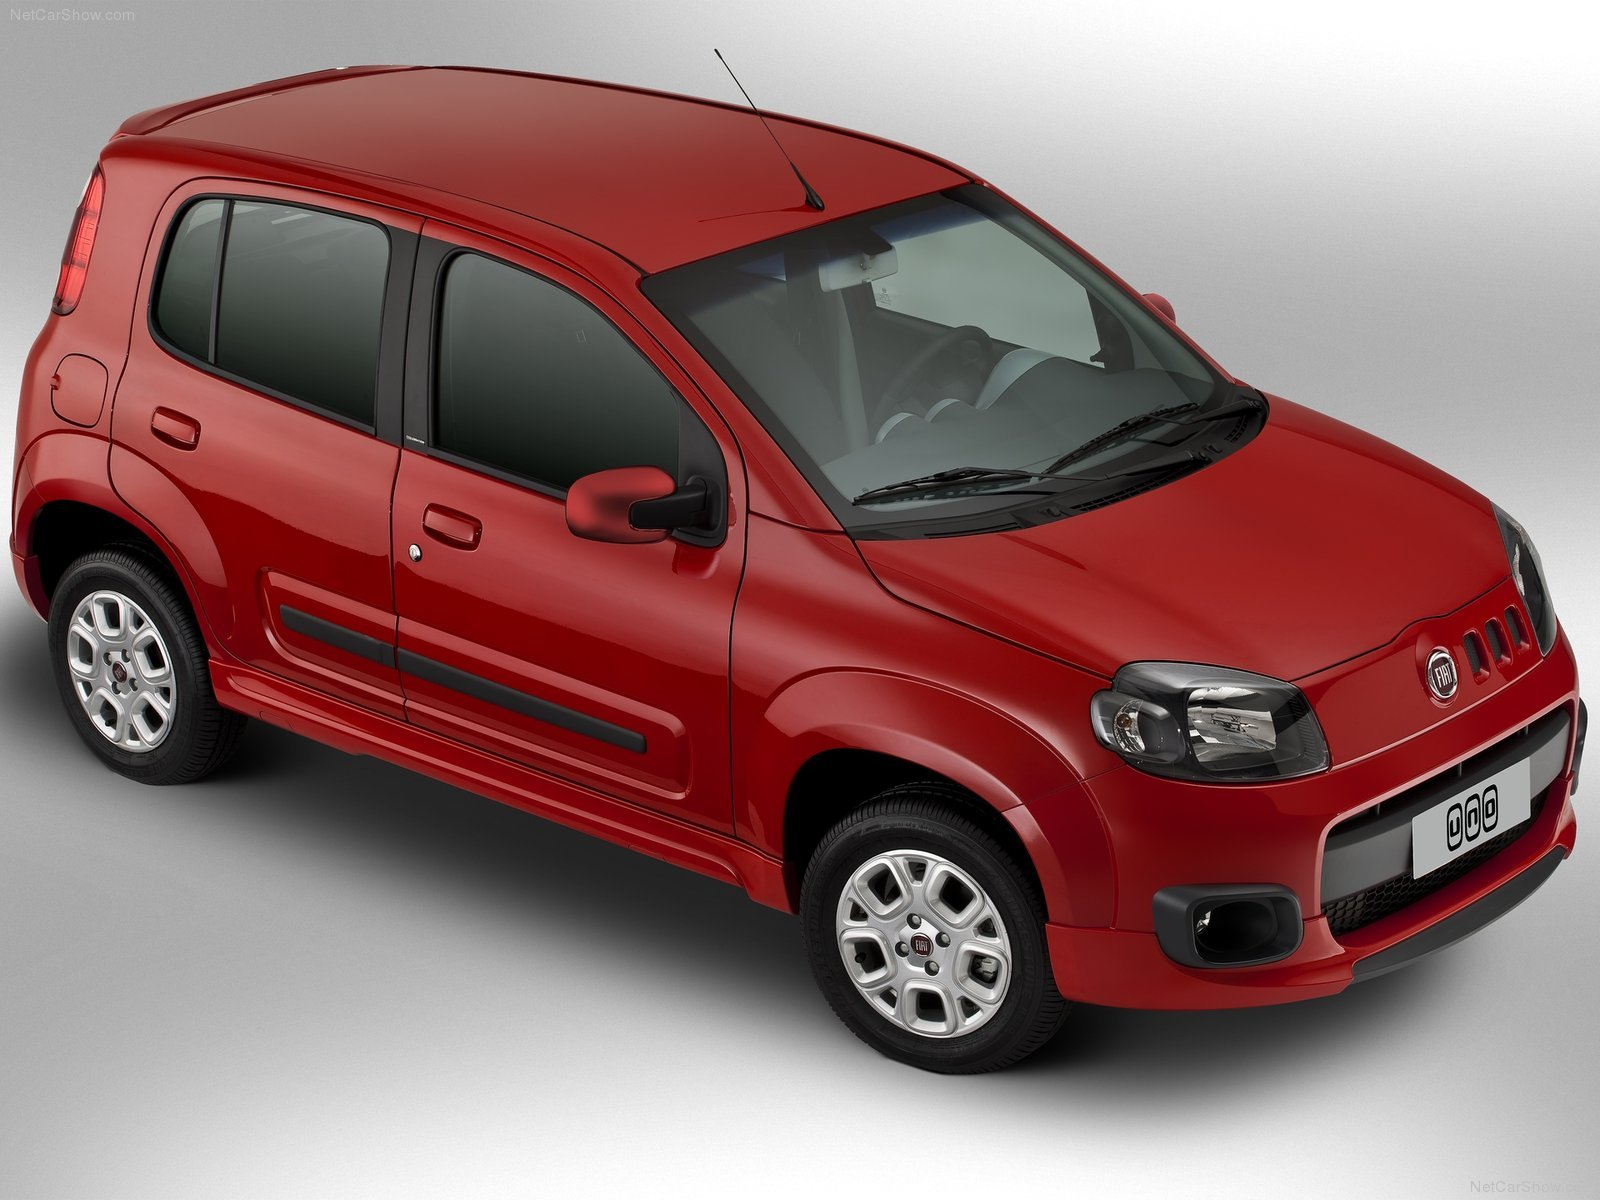 New Fiat Uno Spec And Review Car And Style On This Month